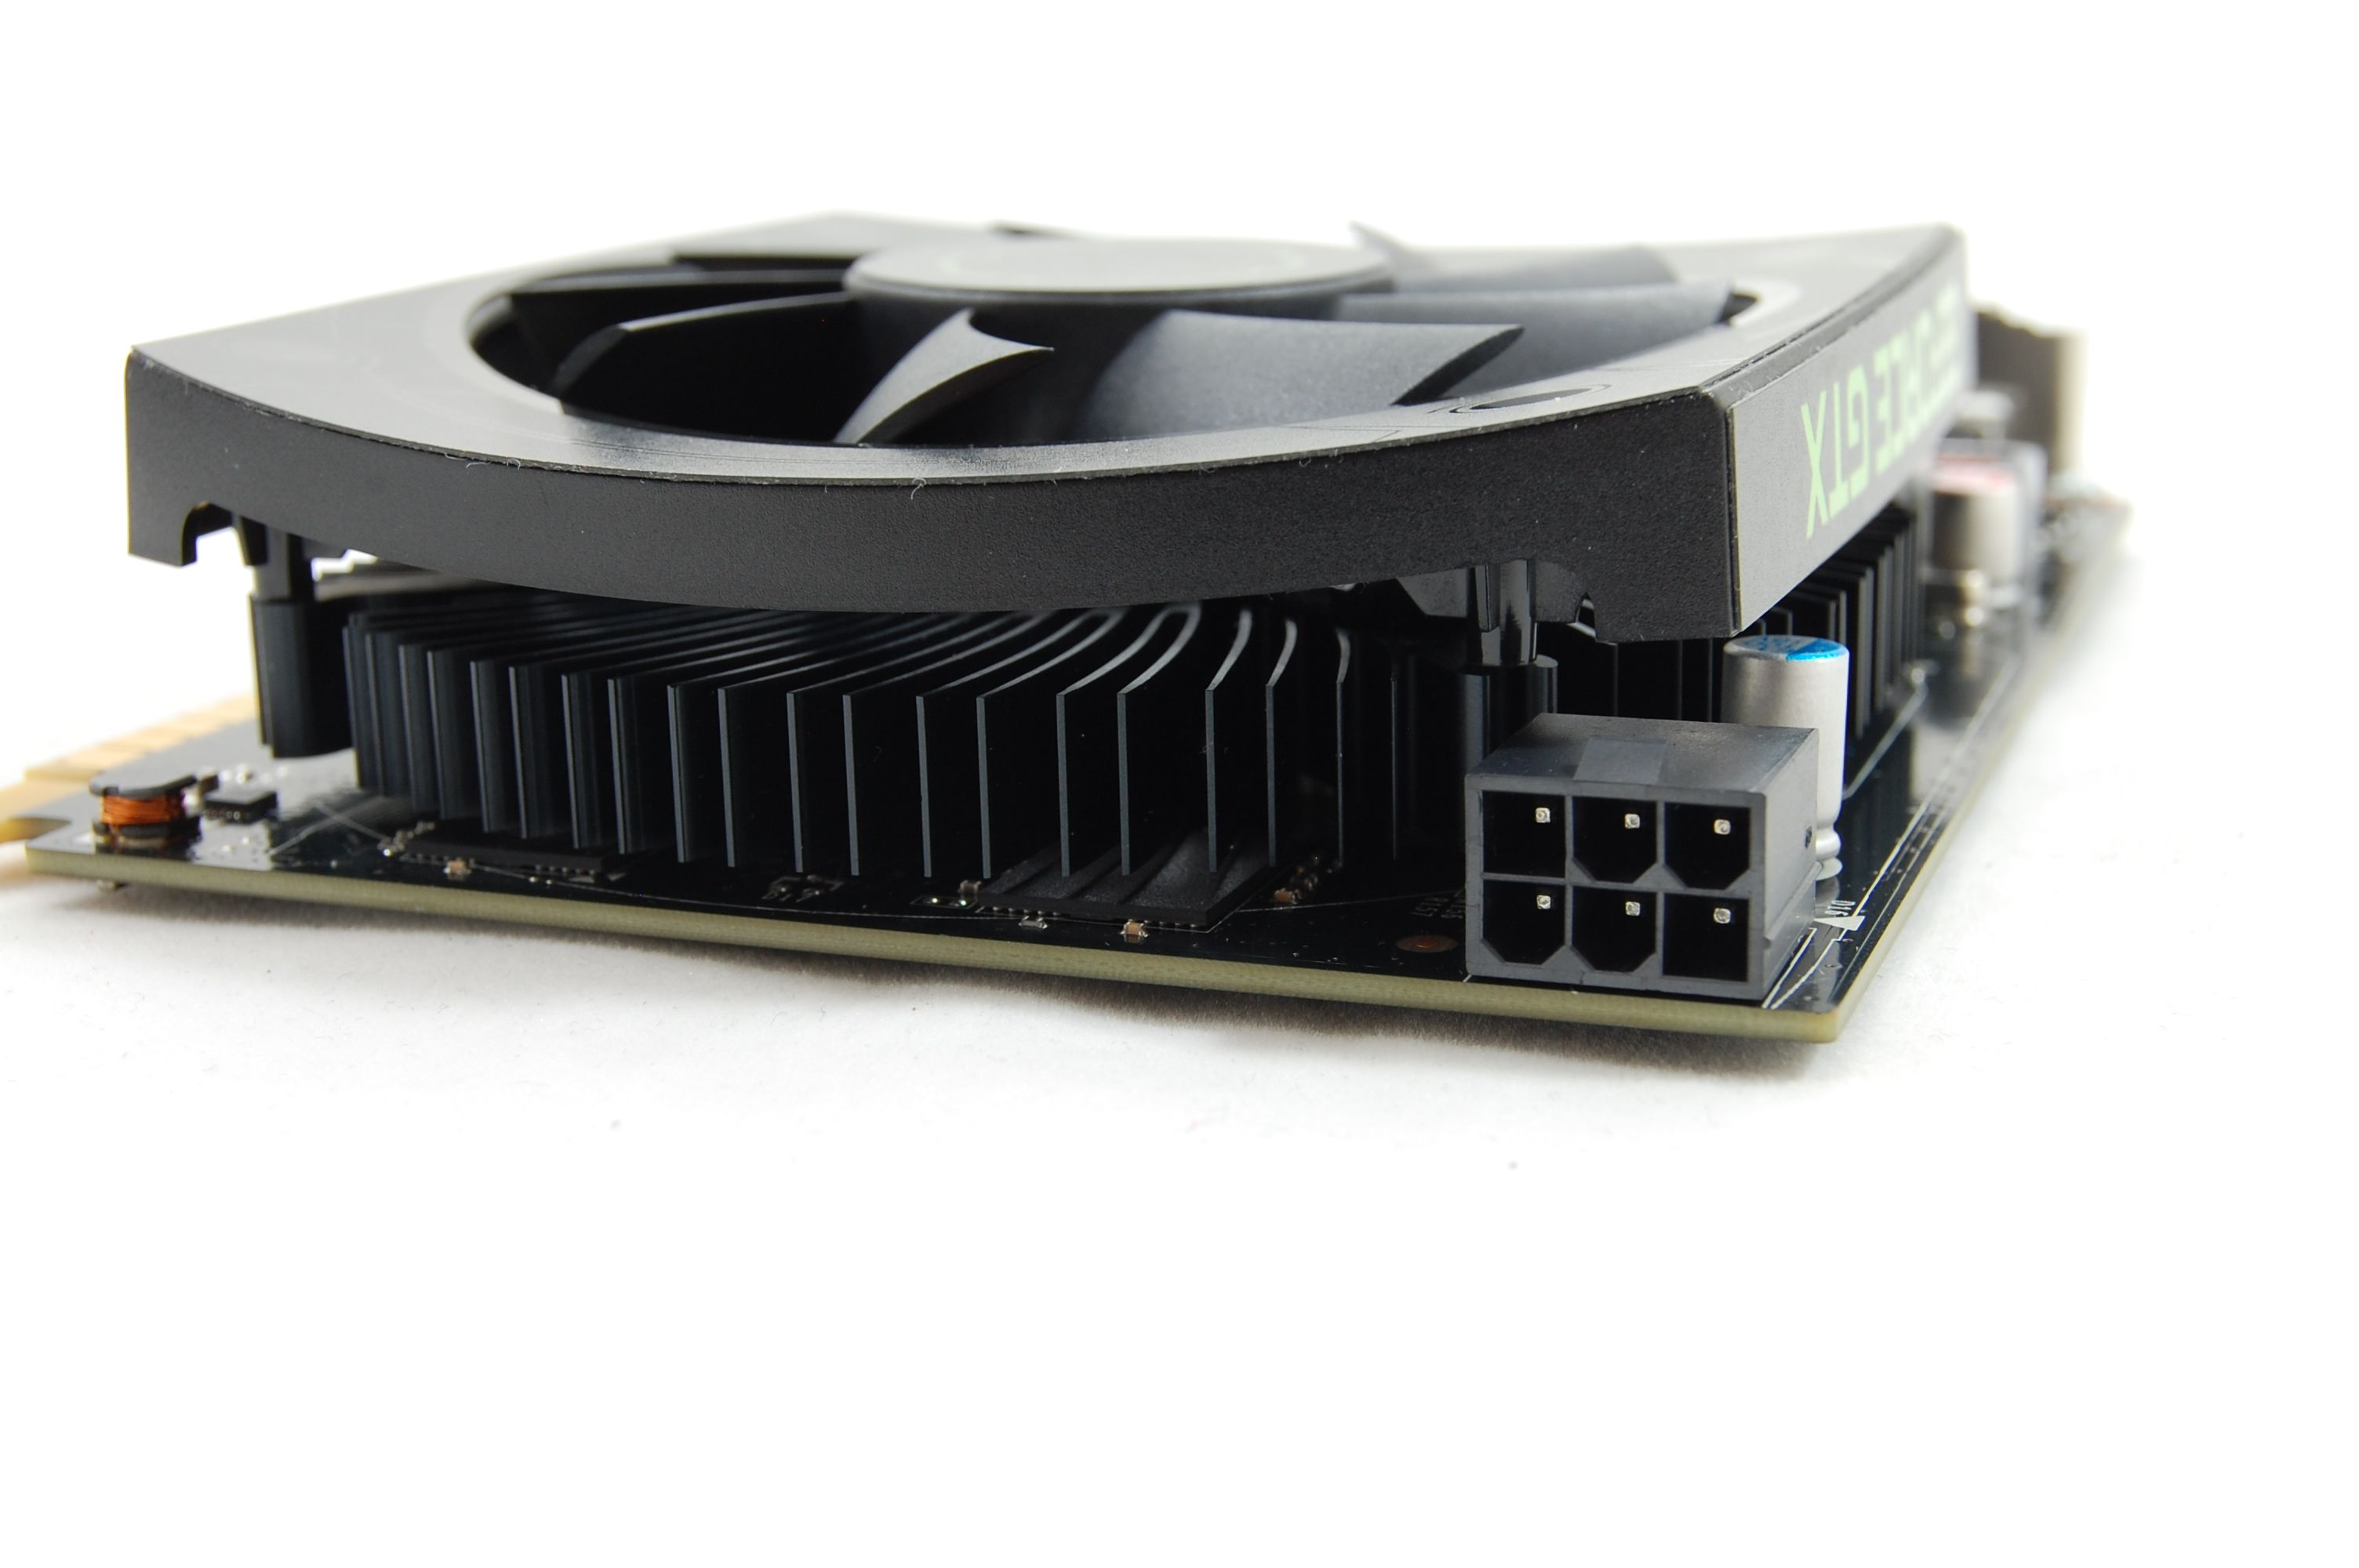 Nvidia Geforce GTX 550 Ti Power Port